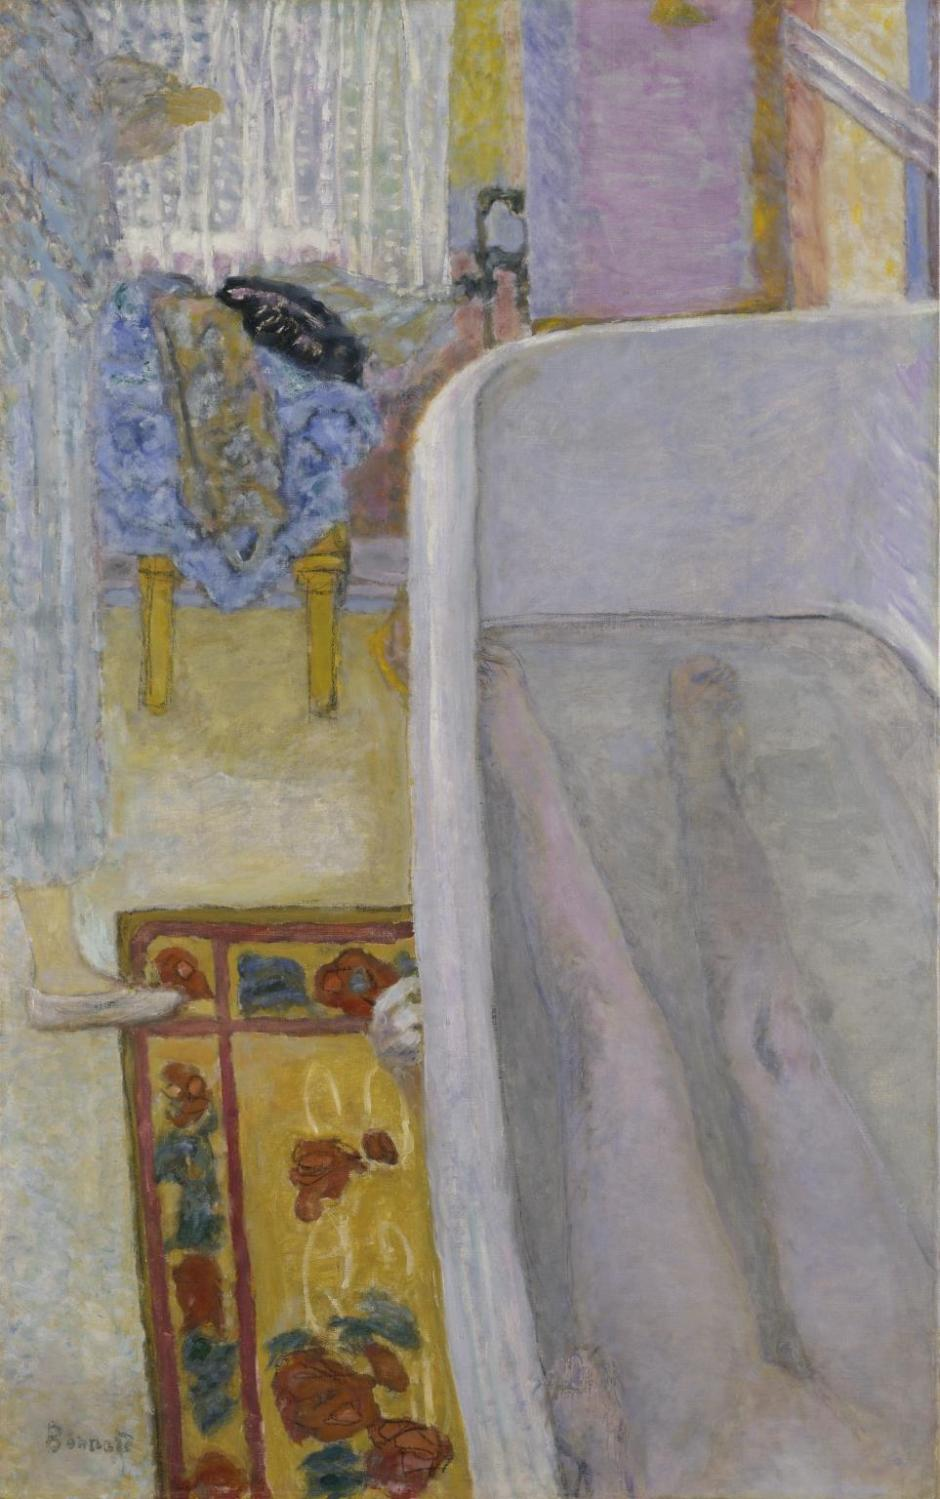 Nude in the Bath 1925 by Pierre Bonnard 1867-1947